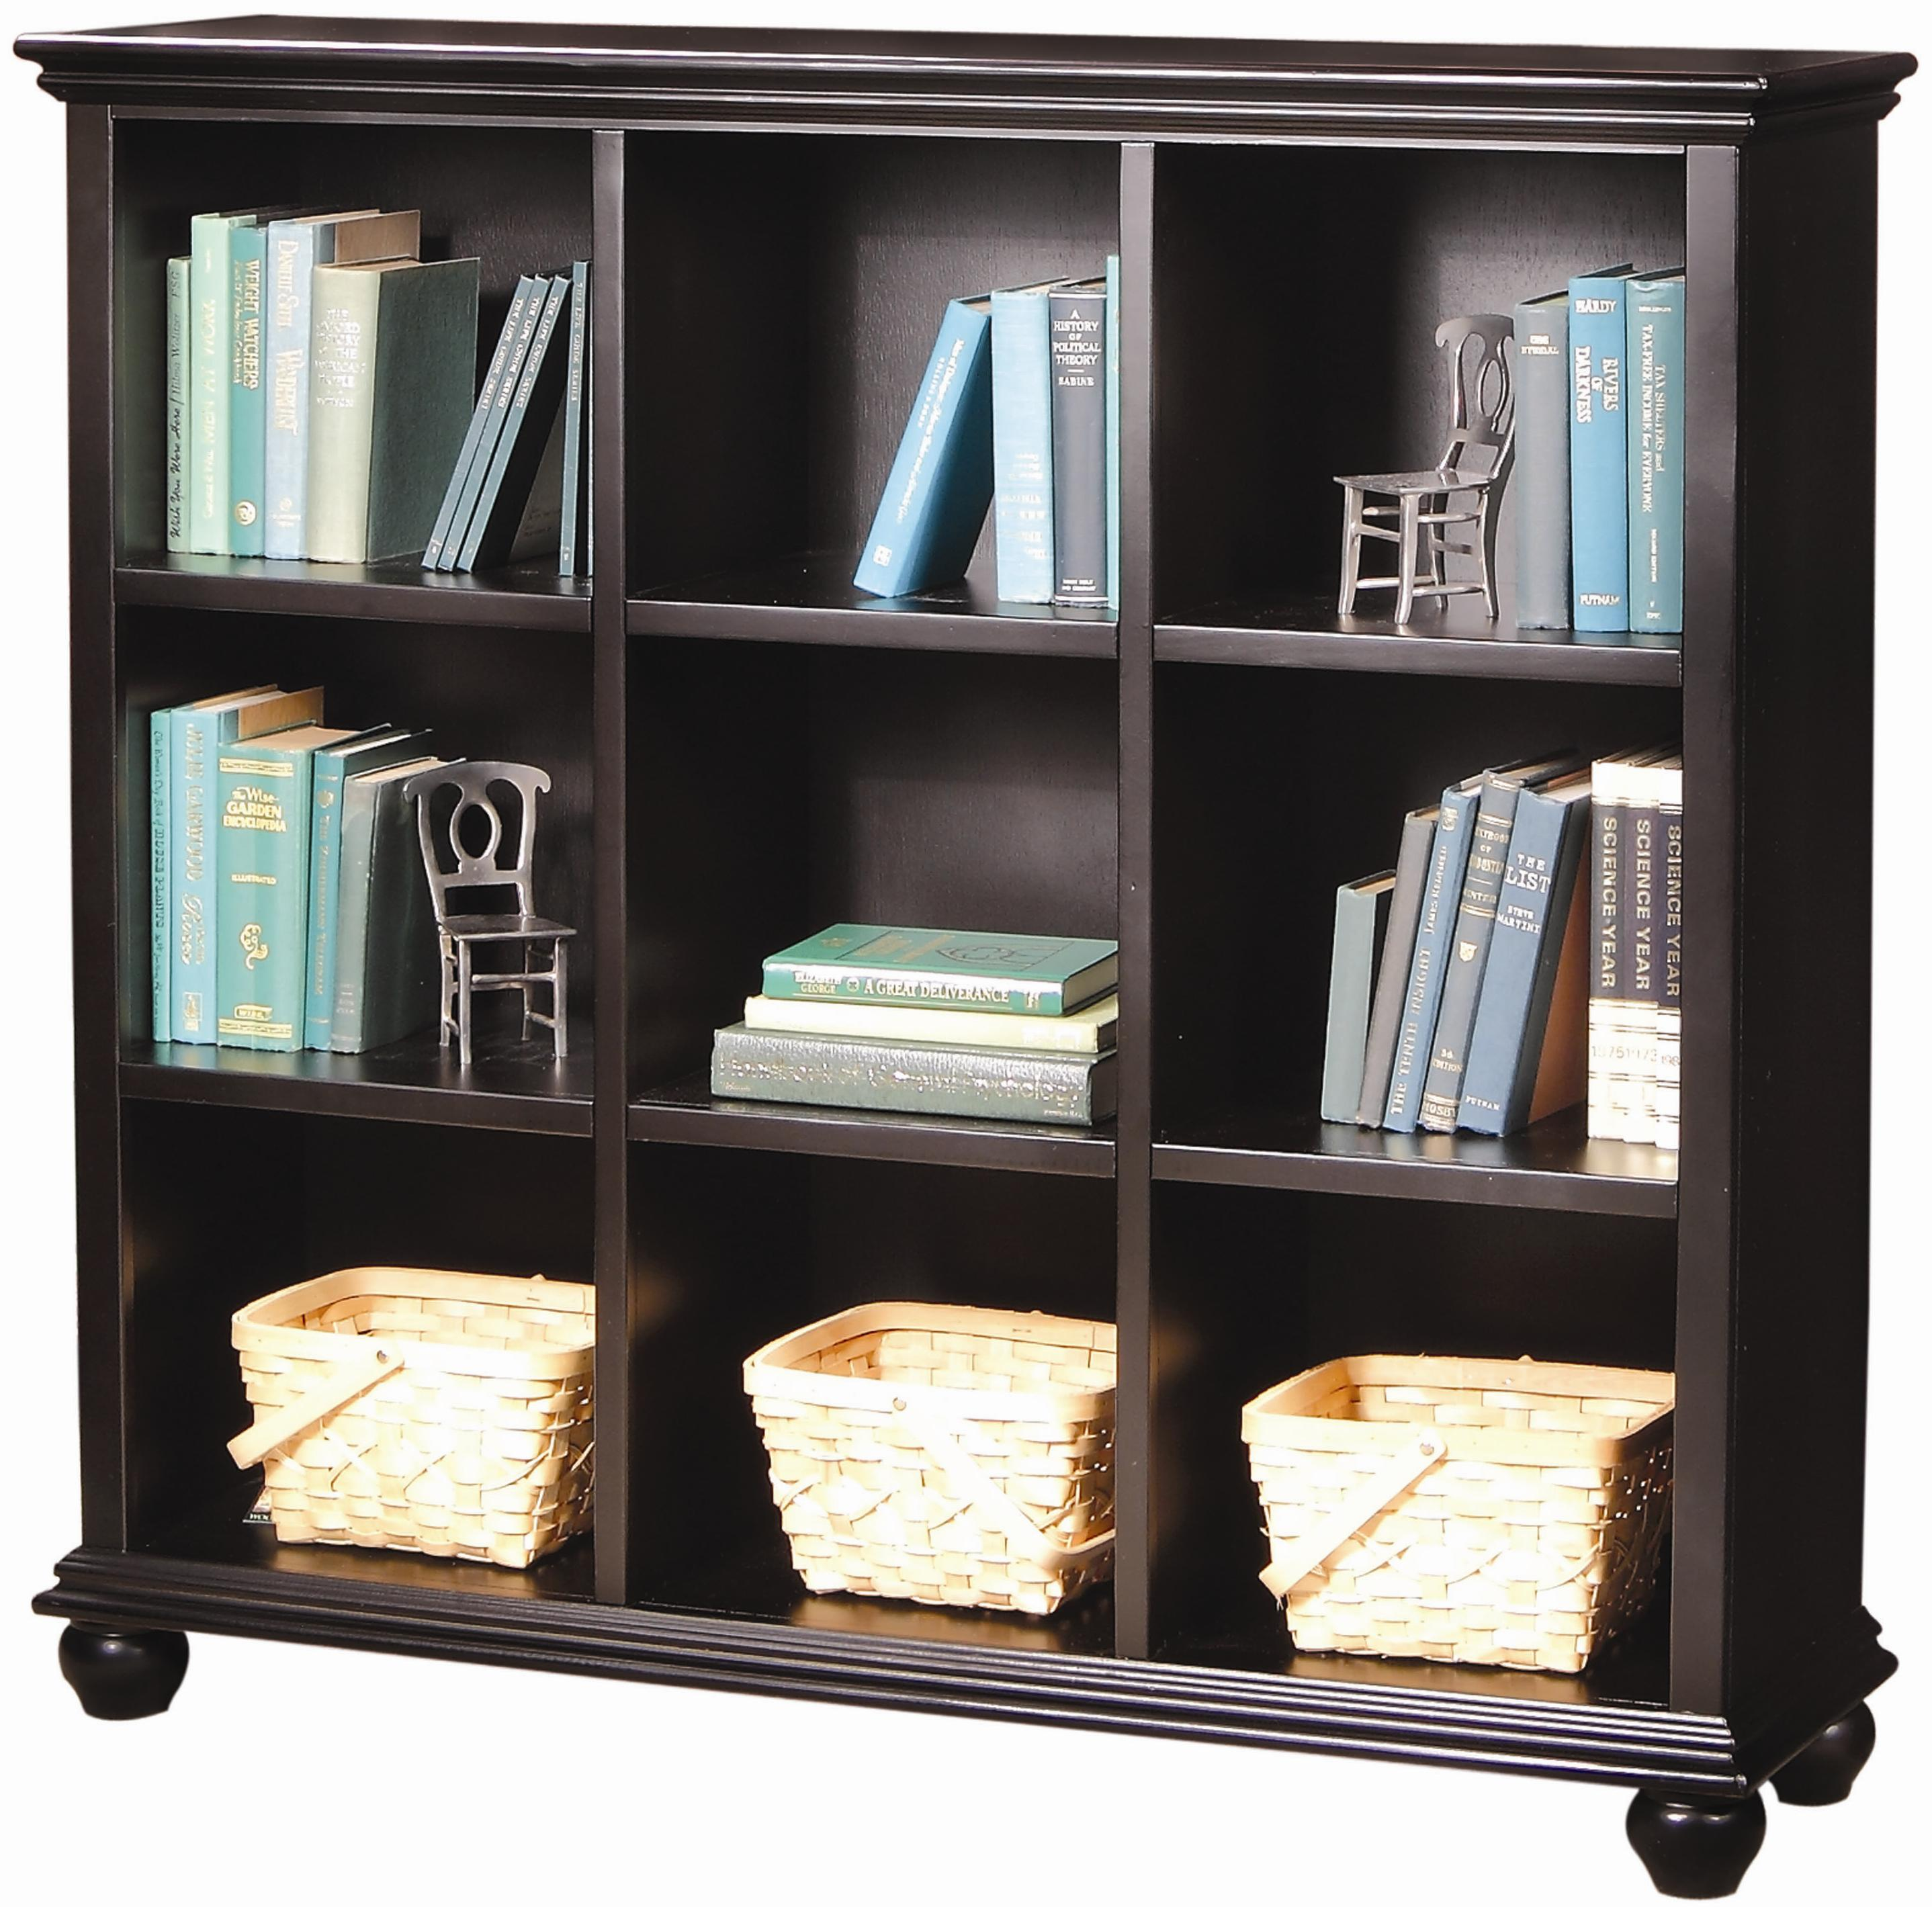 sauder storage credenza kitchen lane com amazon scribed dining dp bookcase oak finish barrister